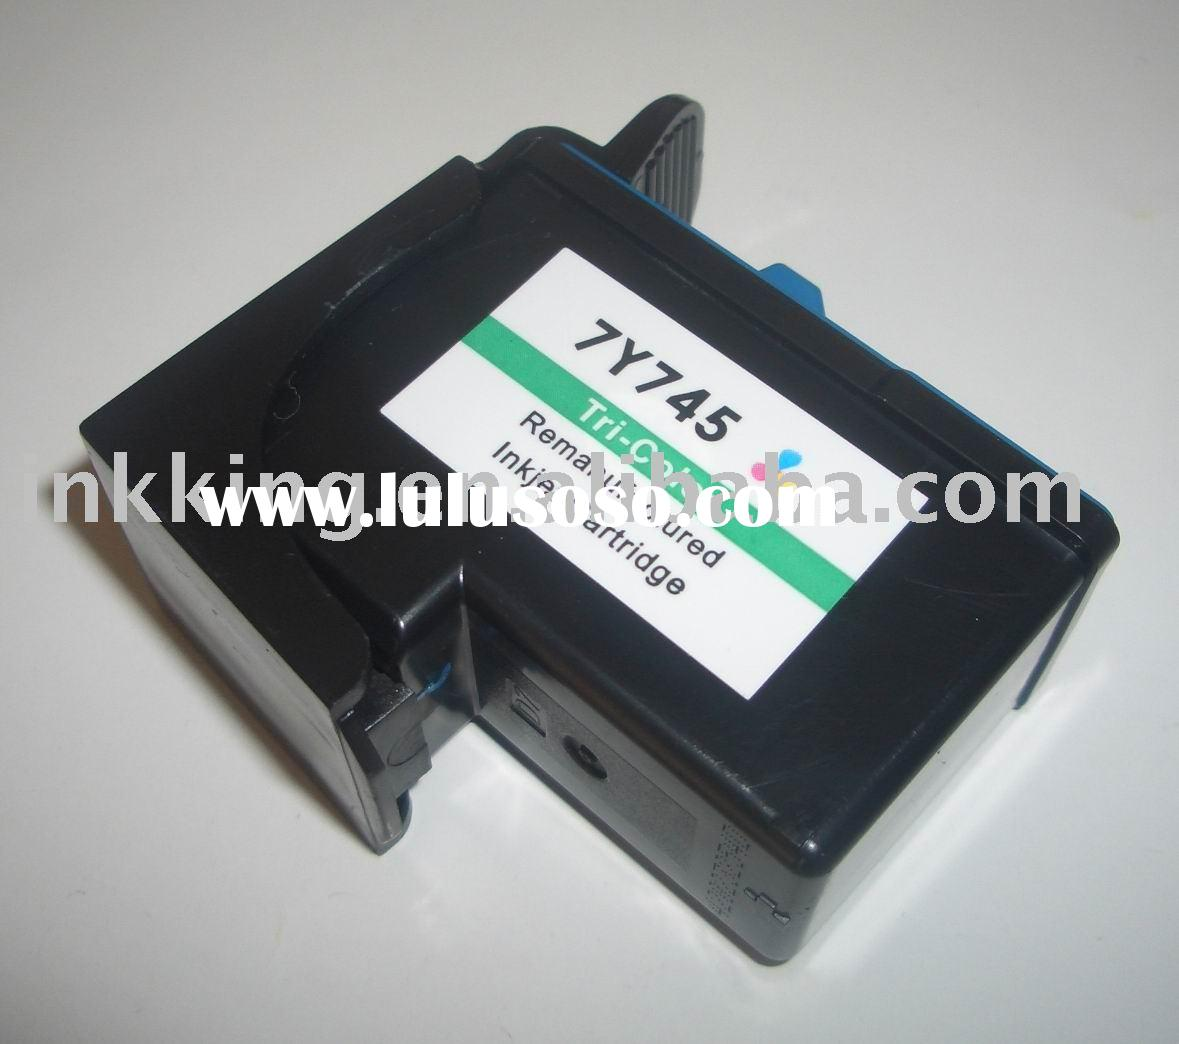 Compatible Dell Inkjet Print Cartridge 7Y745